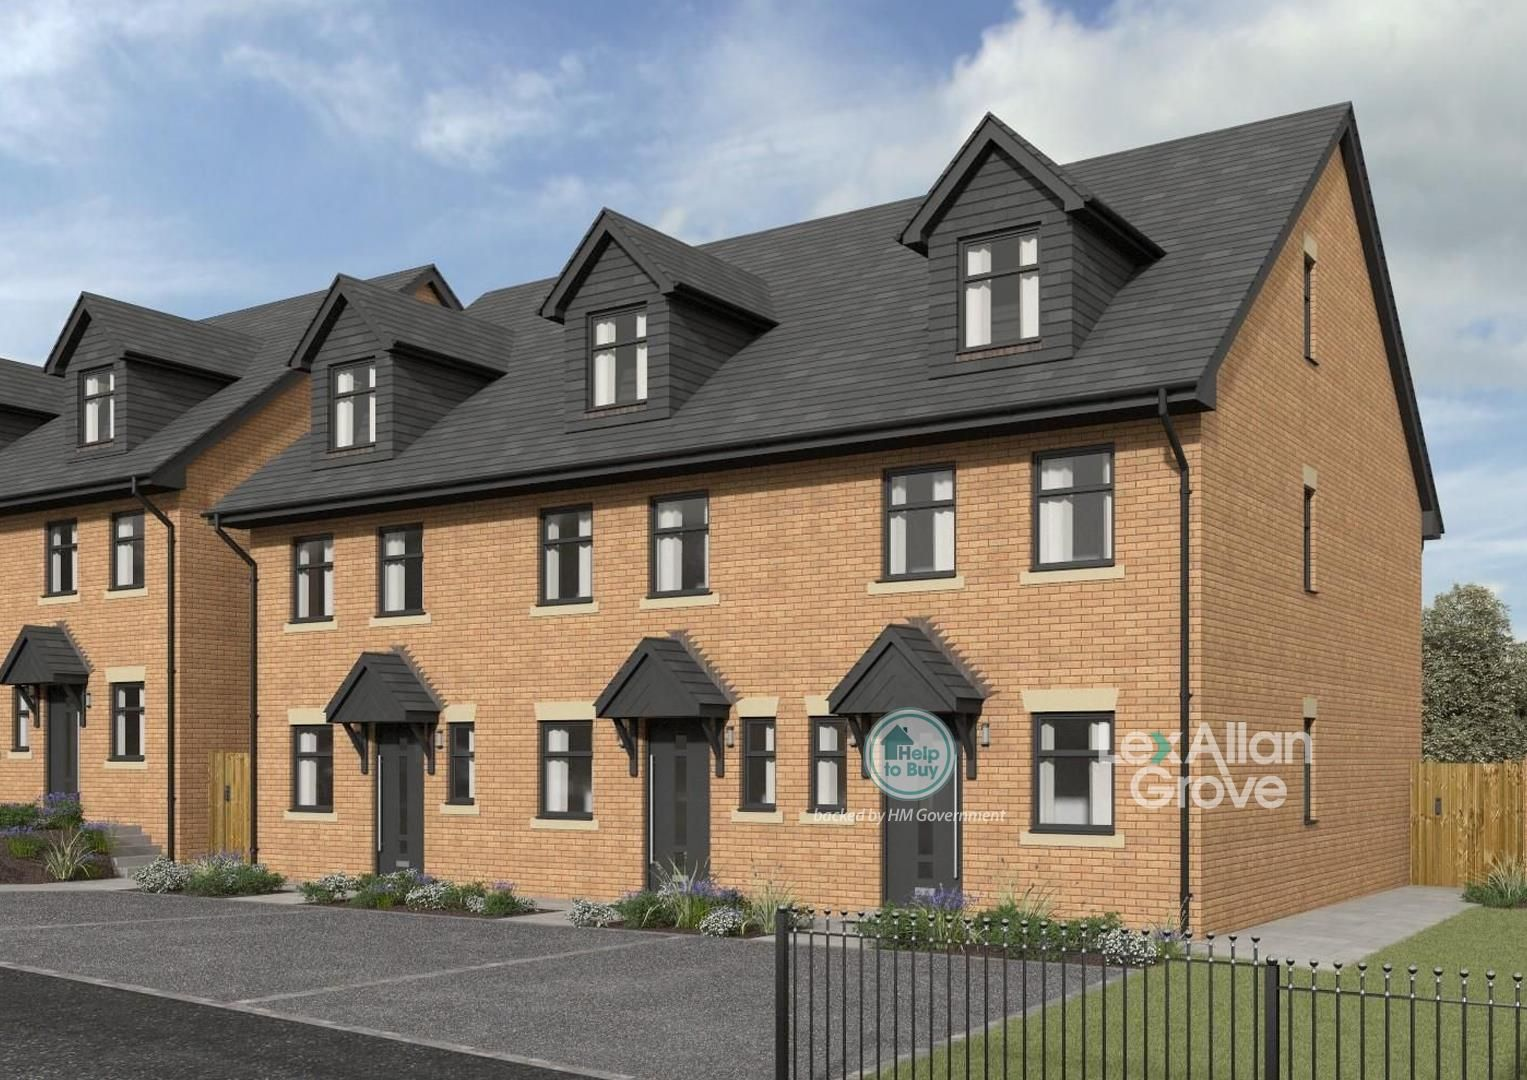 4 bed town-house for sale - Property Image 1